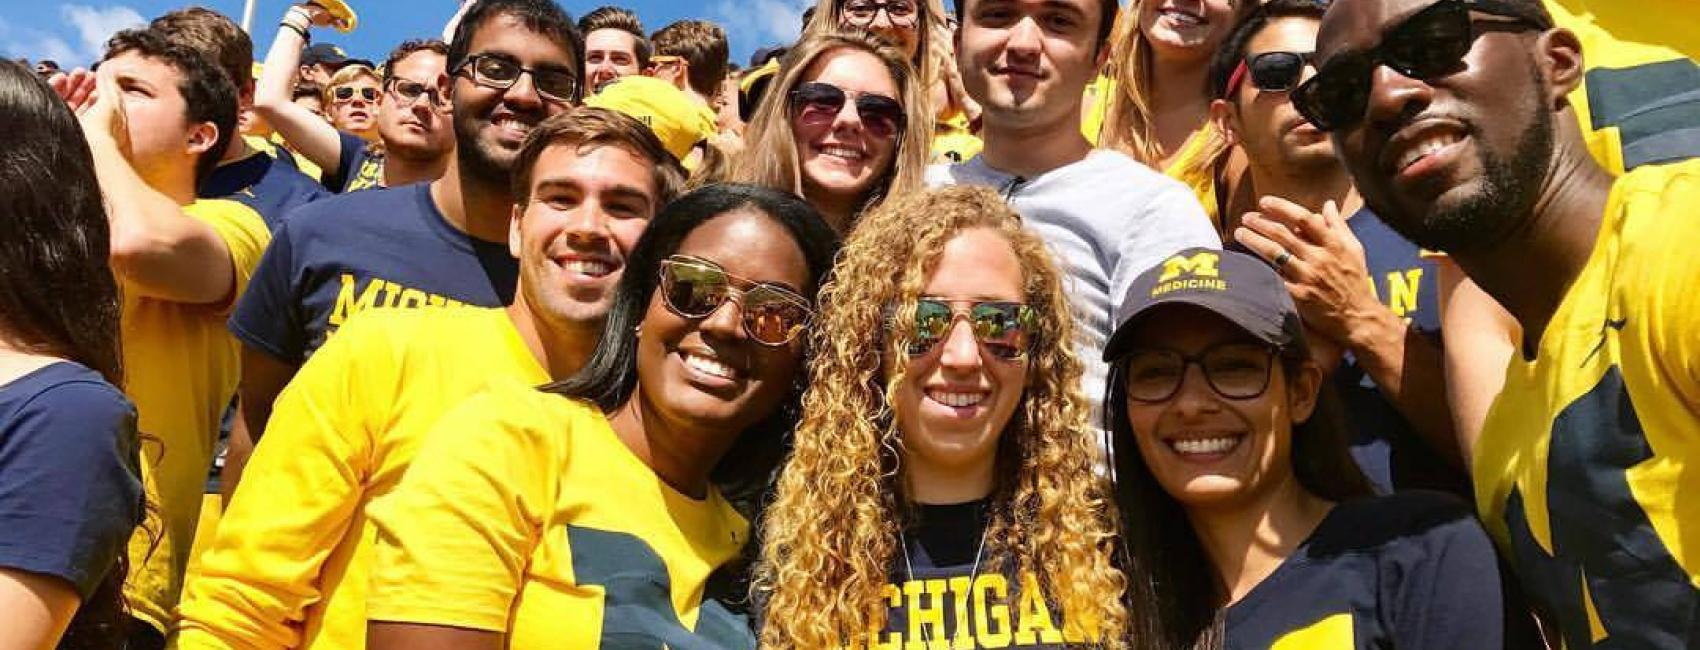 Medical students at the Big House